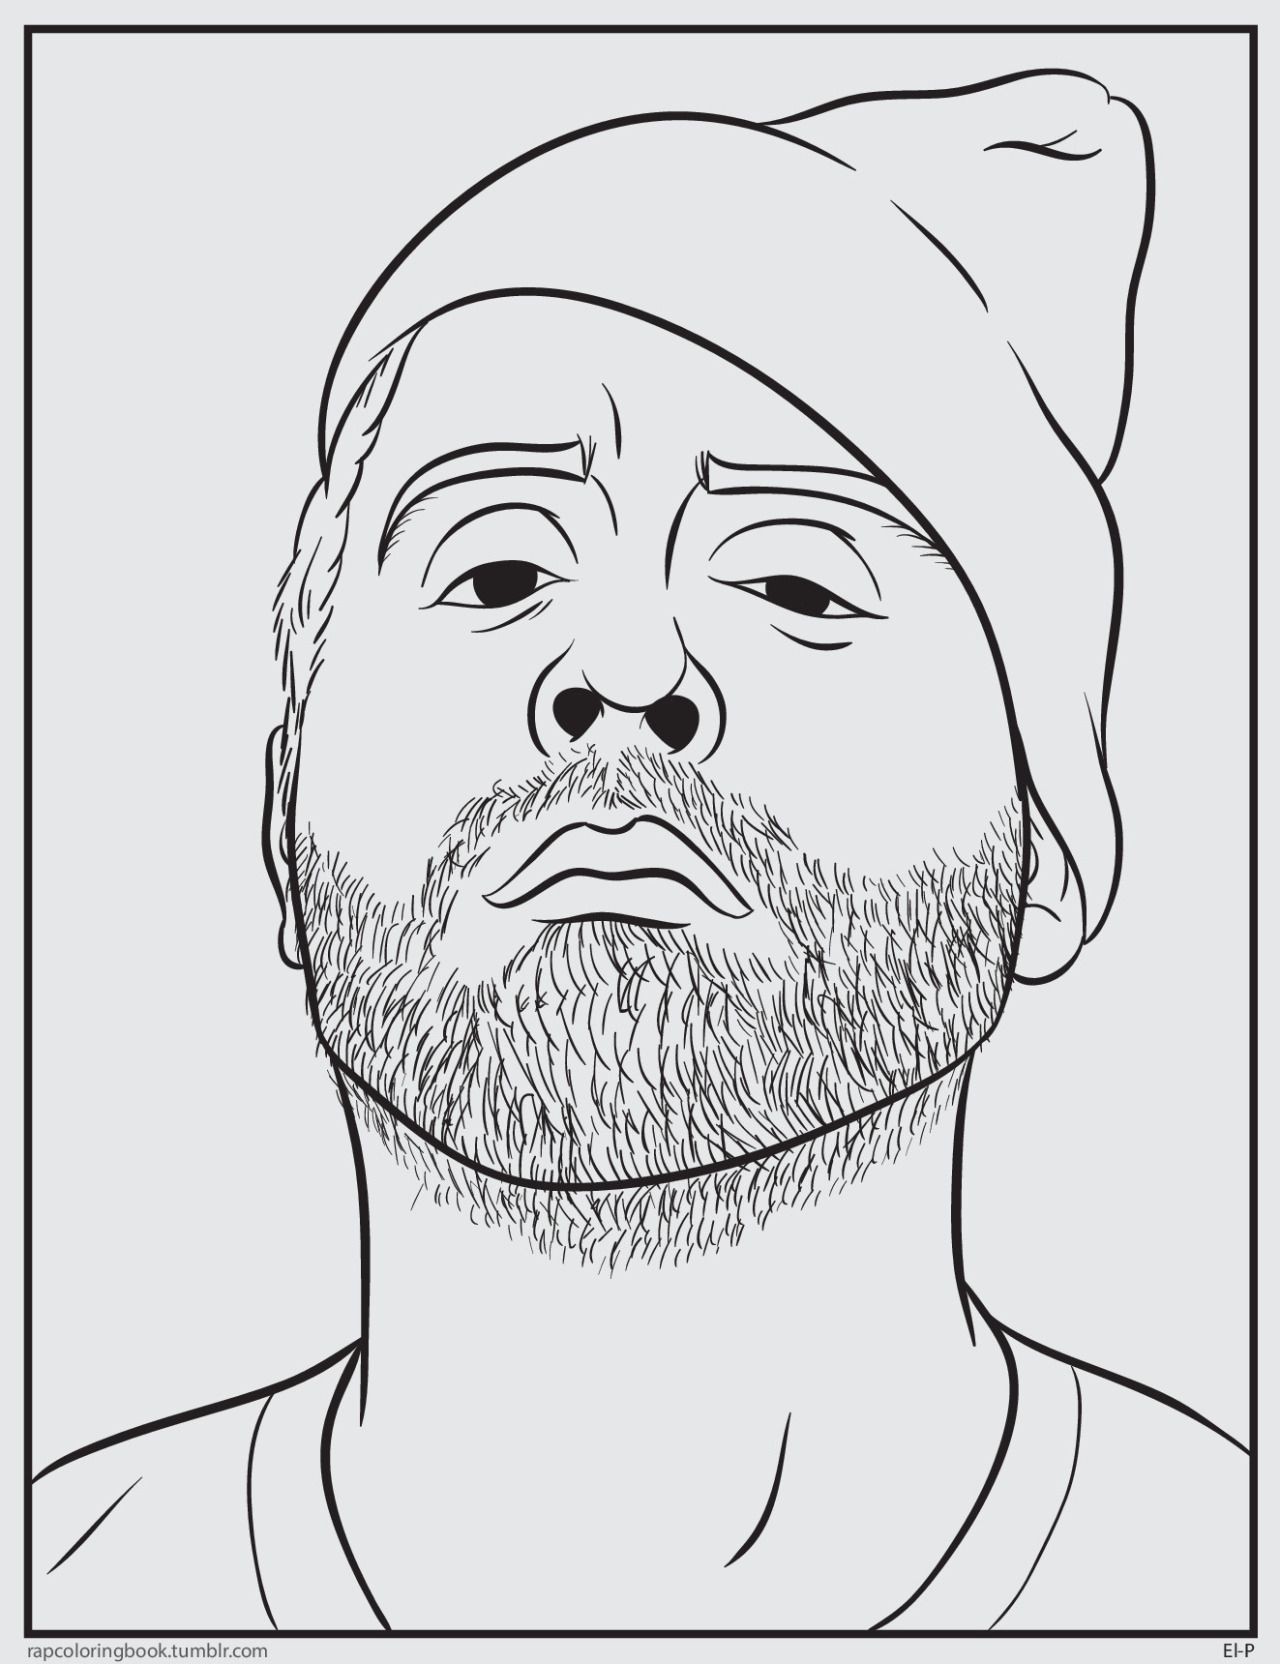 Bun b s rapper coloring book coloring pages for Rapper coloring pages